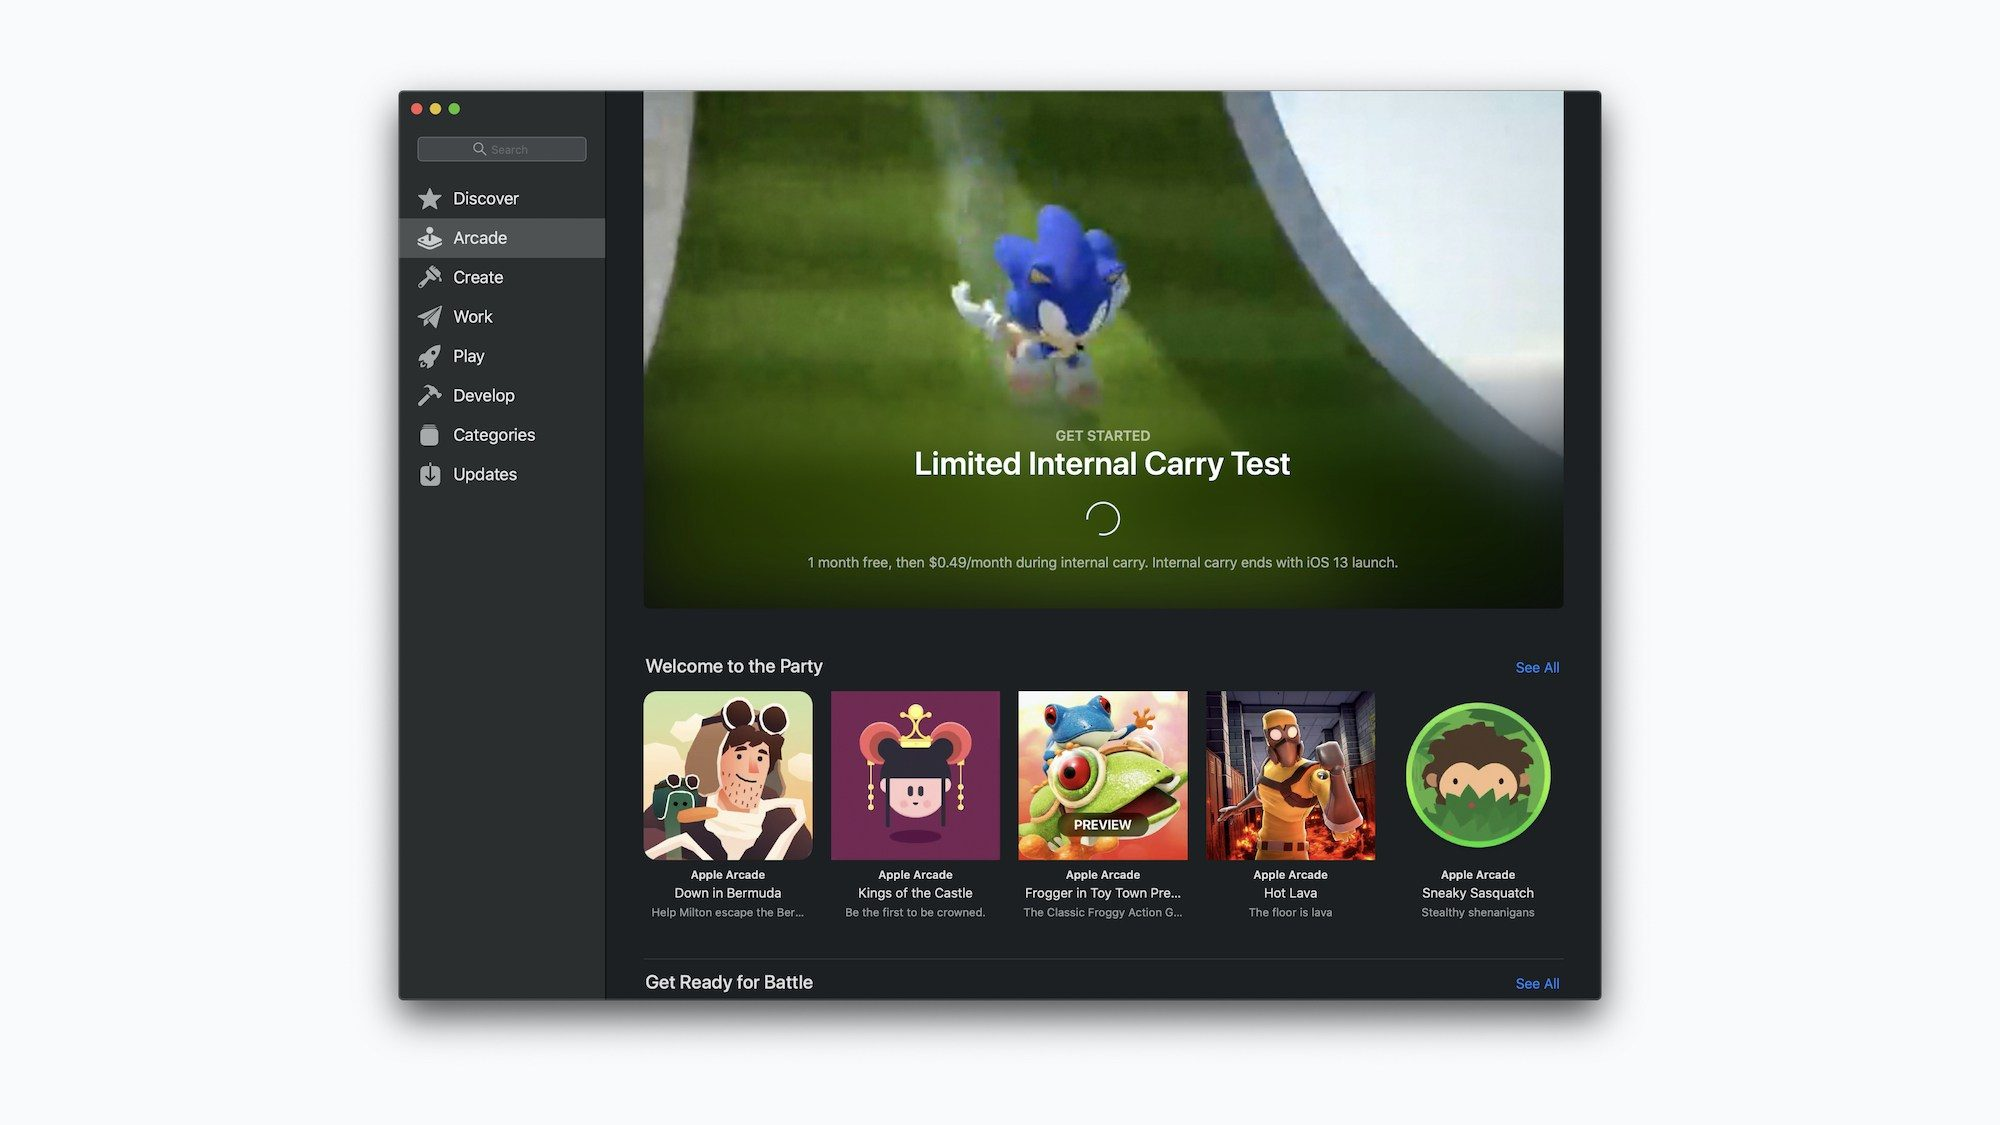 Apple running early access program for Apple Arcade, here's what it looks like